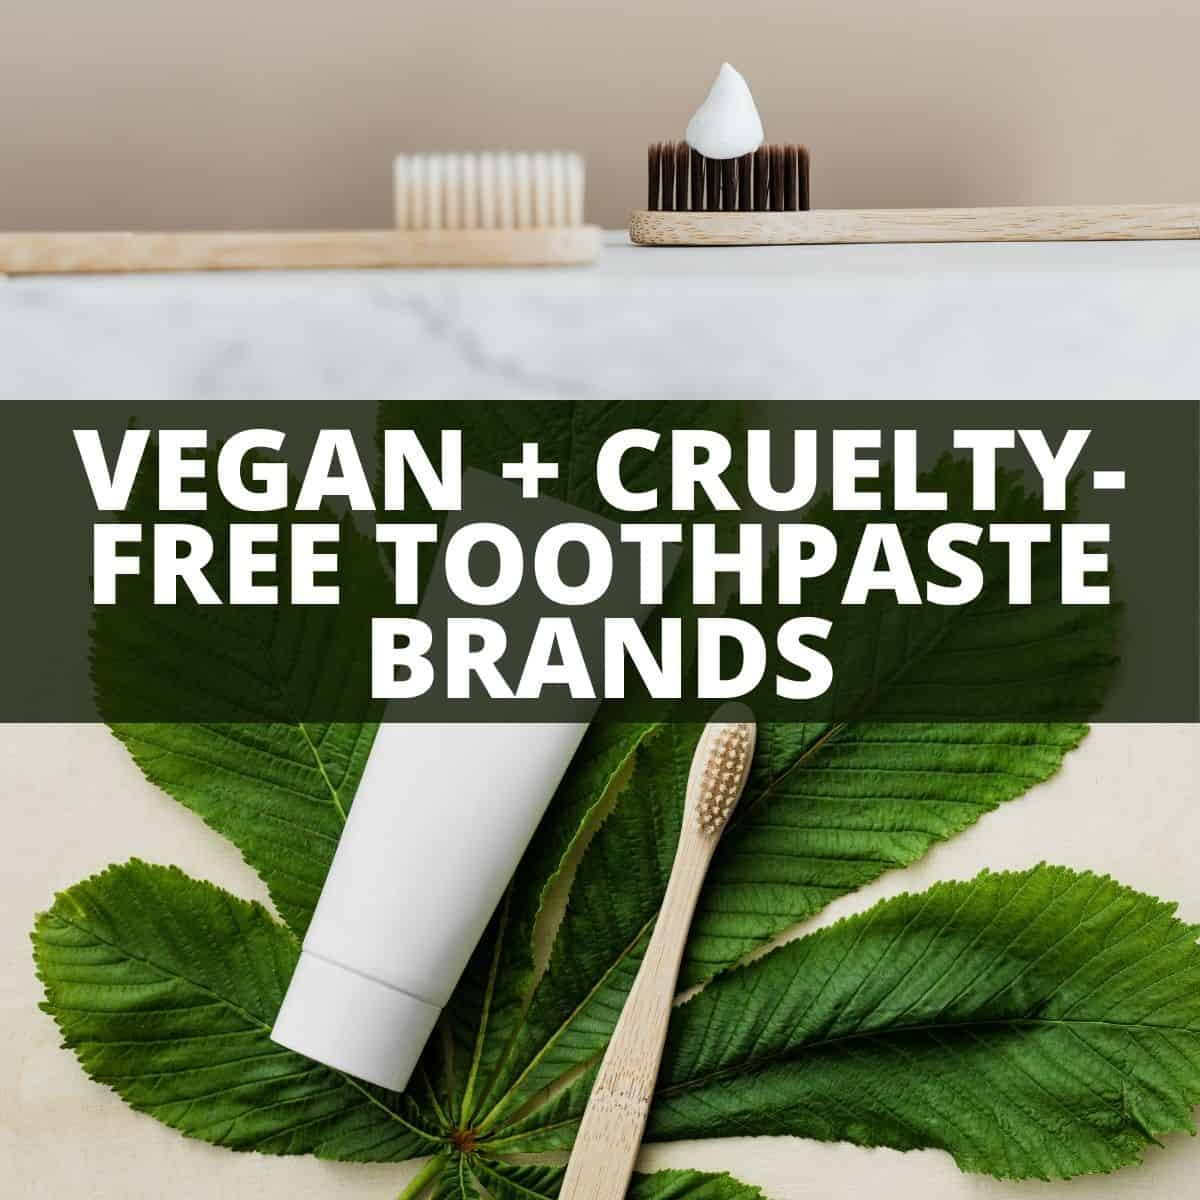 Three toothbrushes and toothpaste with text that says vegan and cruelty-free toothpaste brands.